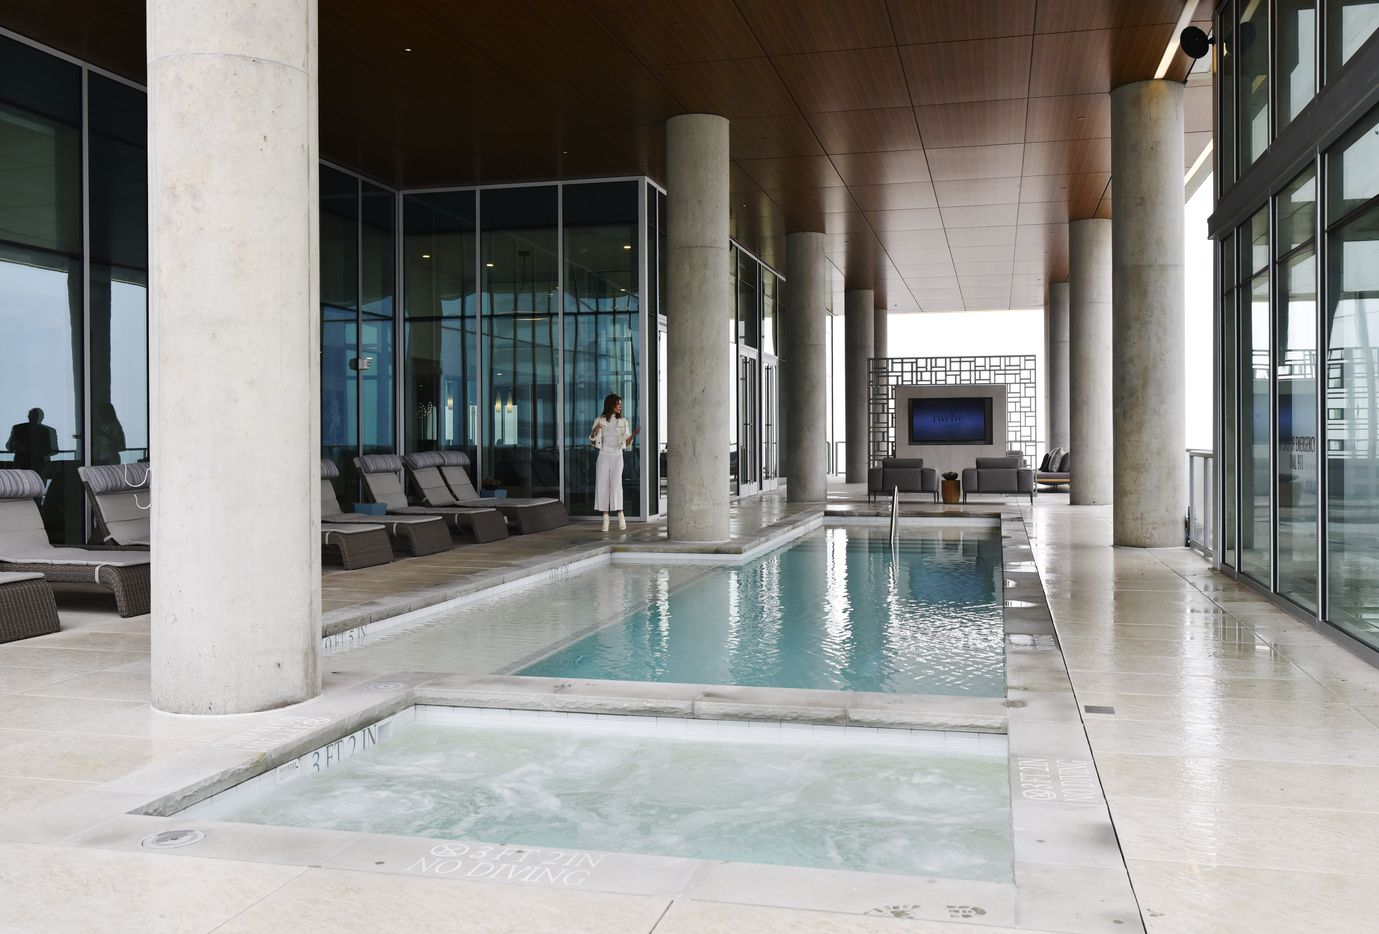 The sixth floor pool area at the Twelve Cowboys Way luxury residential tower at the Star in Frisco.